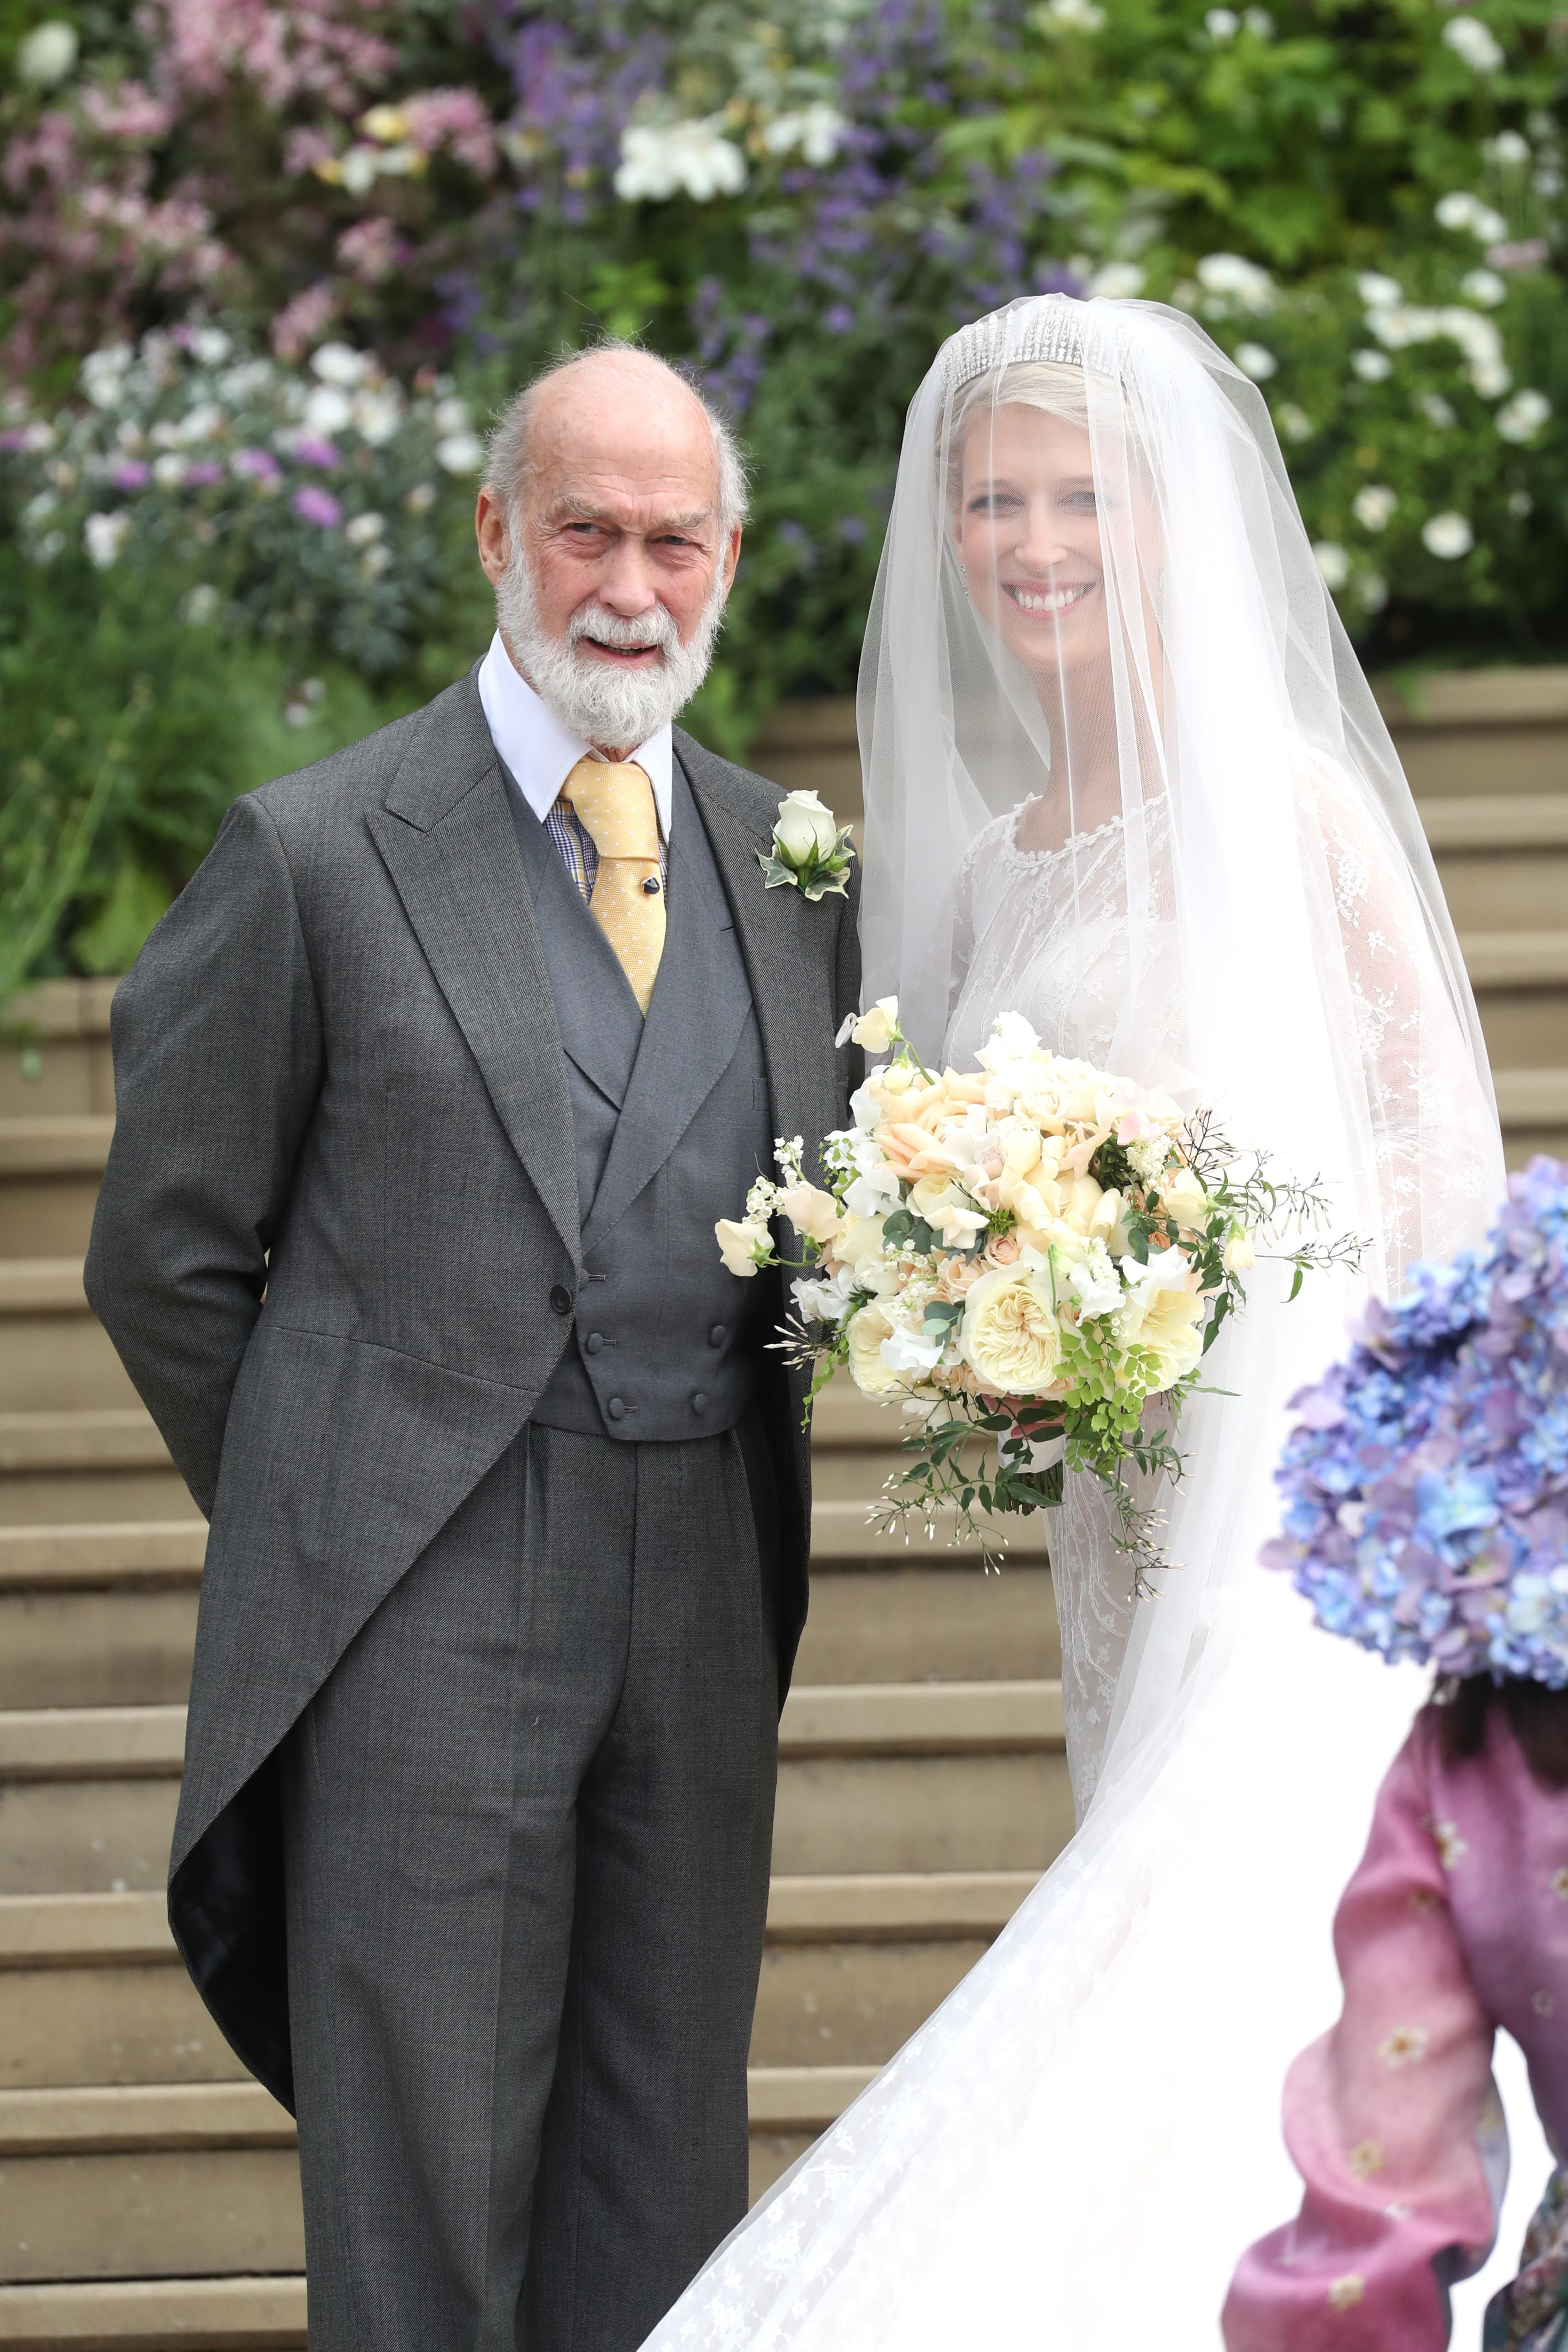 Royal wedding 2019: Lady Gabriella Windsor's wedding dress pictures